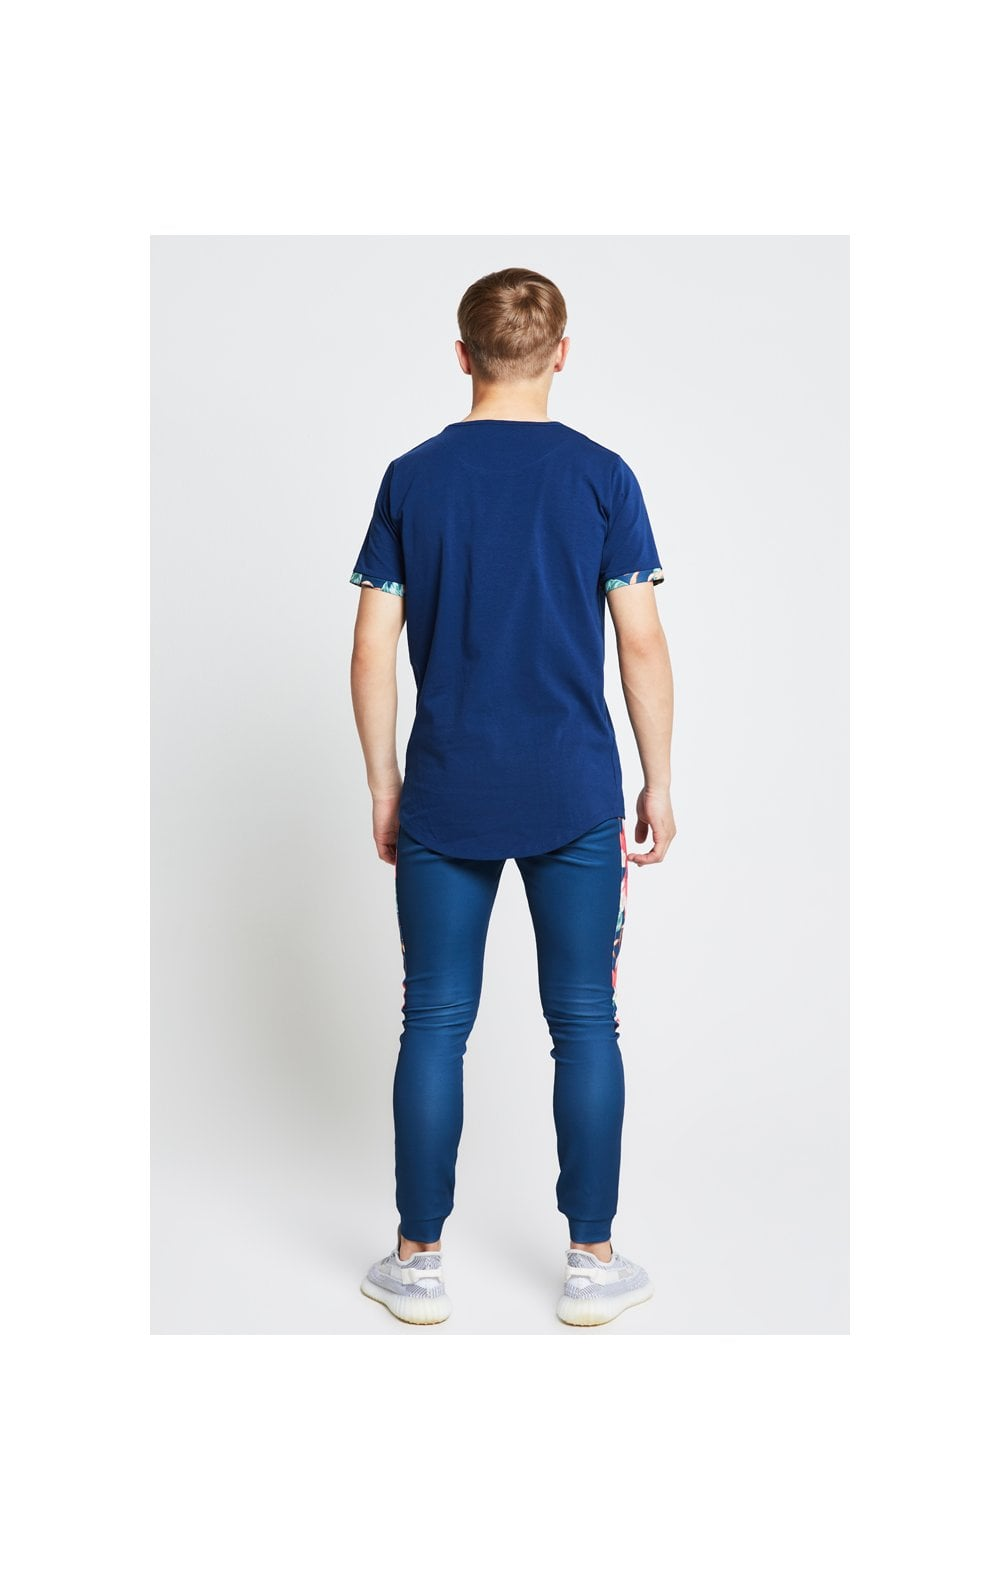 Illusive London Contrast Cuff Tee – Teal & Tropical Leaf (4)